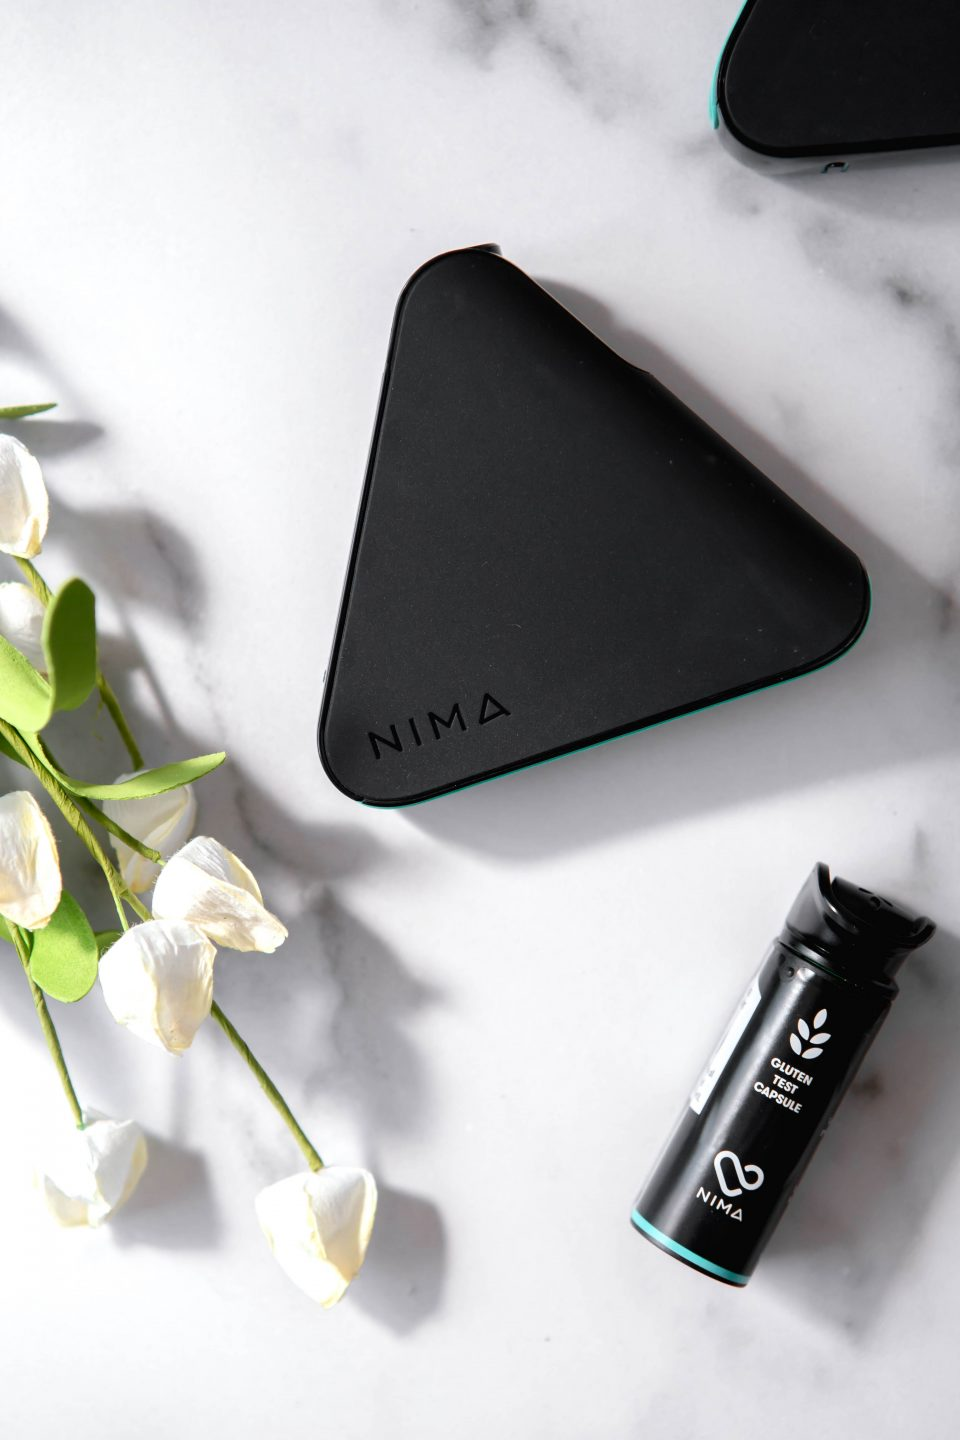 Nima Sensor with flowers and a gluten sensor capsule placed a marble backdrop.